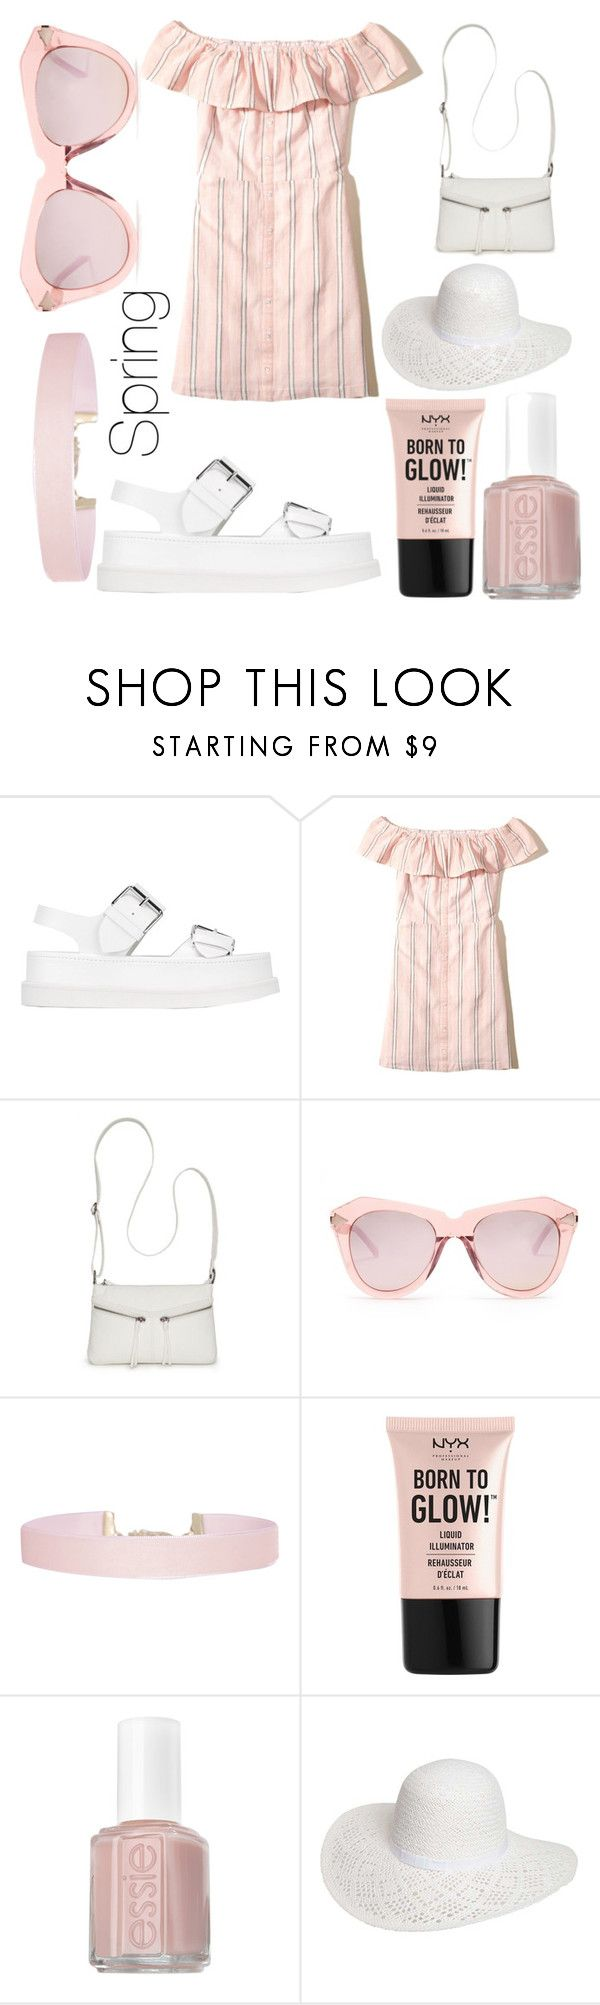 """""""Spring Off The Shoulder Dress"""" by amber-lanehart ❤ liked on Polyvore featuring STELLA McCARTNEY, Hollister Co., Bueno, Karen Walker, Humble Chic, NYX, Essie and Dorothy Perkins"""